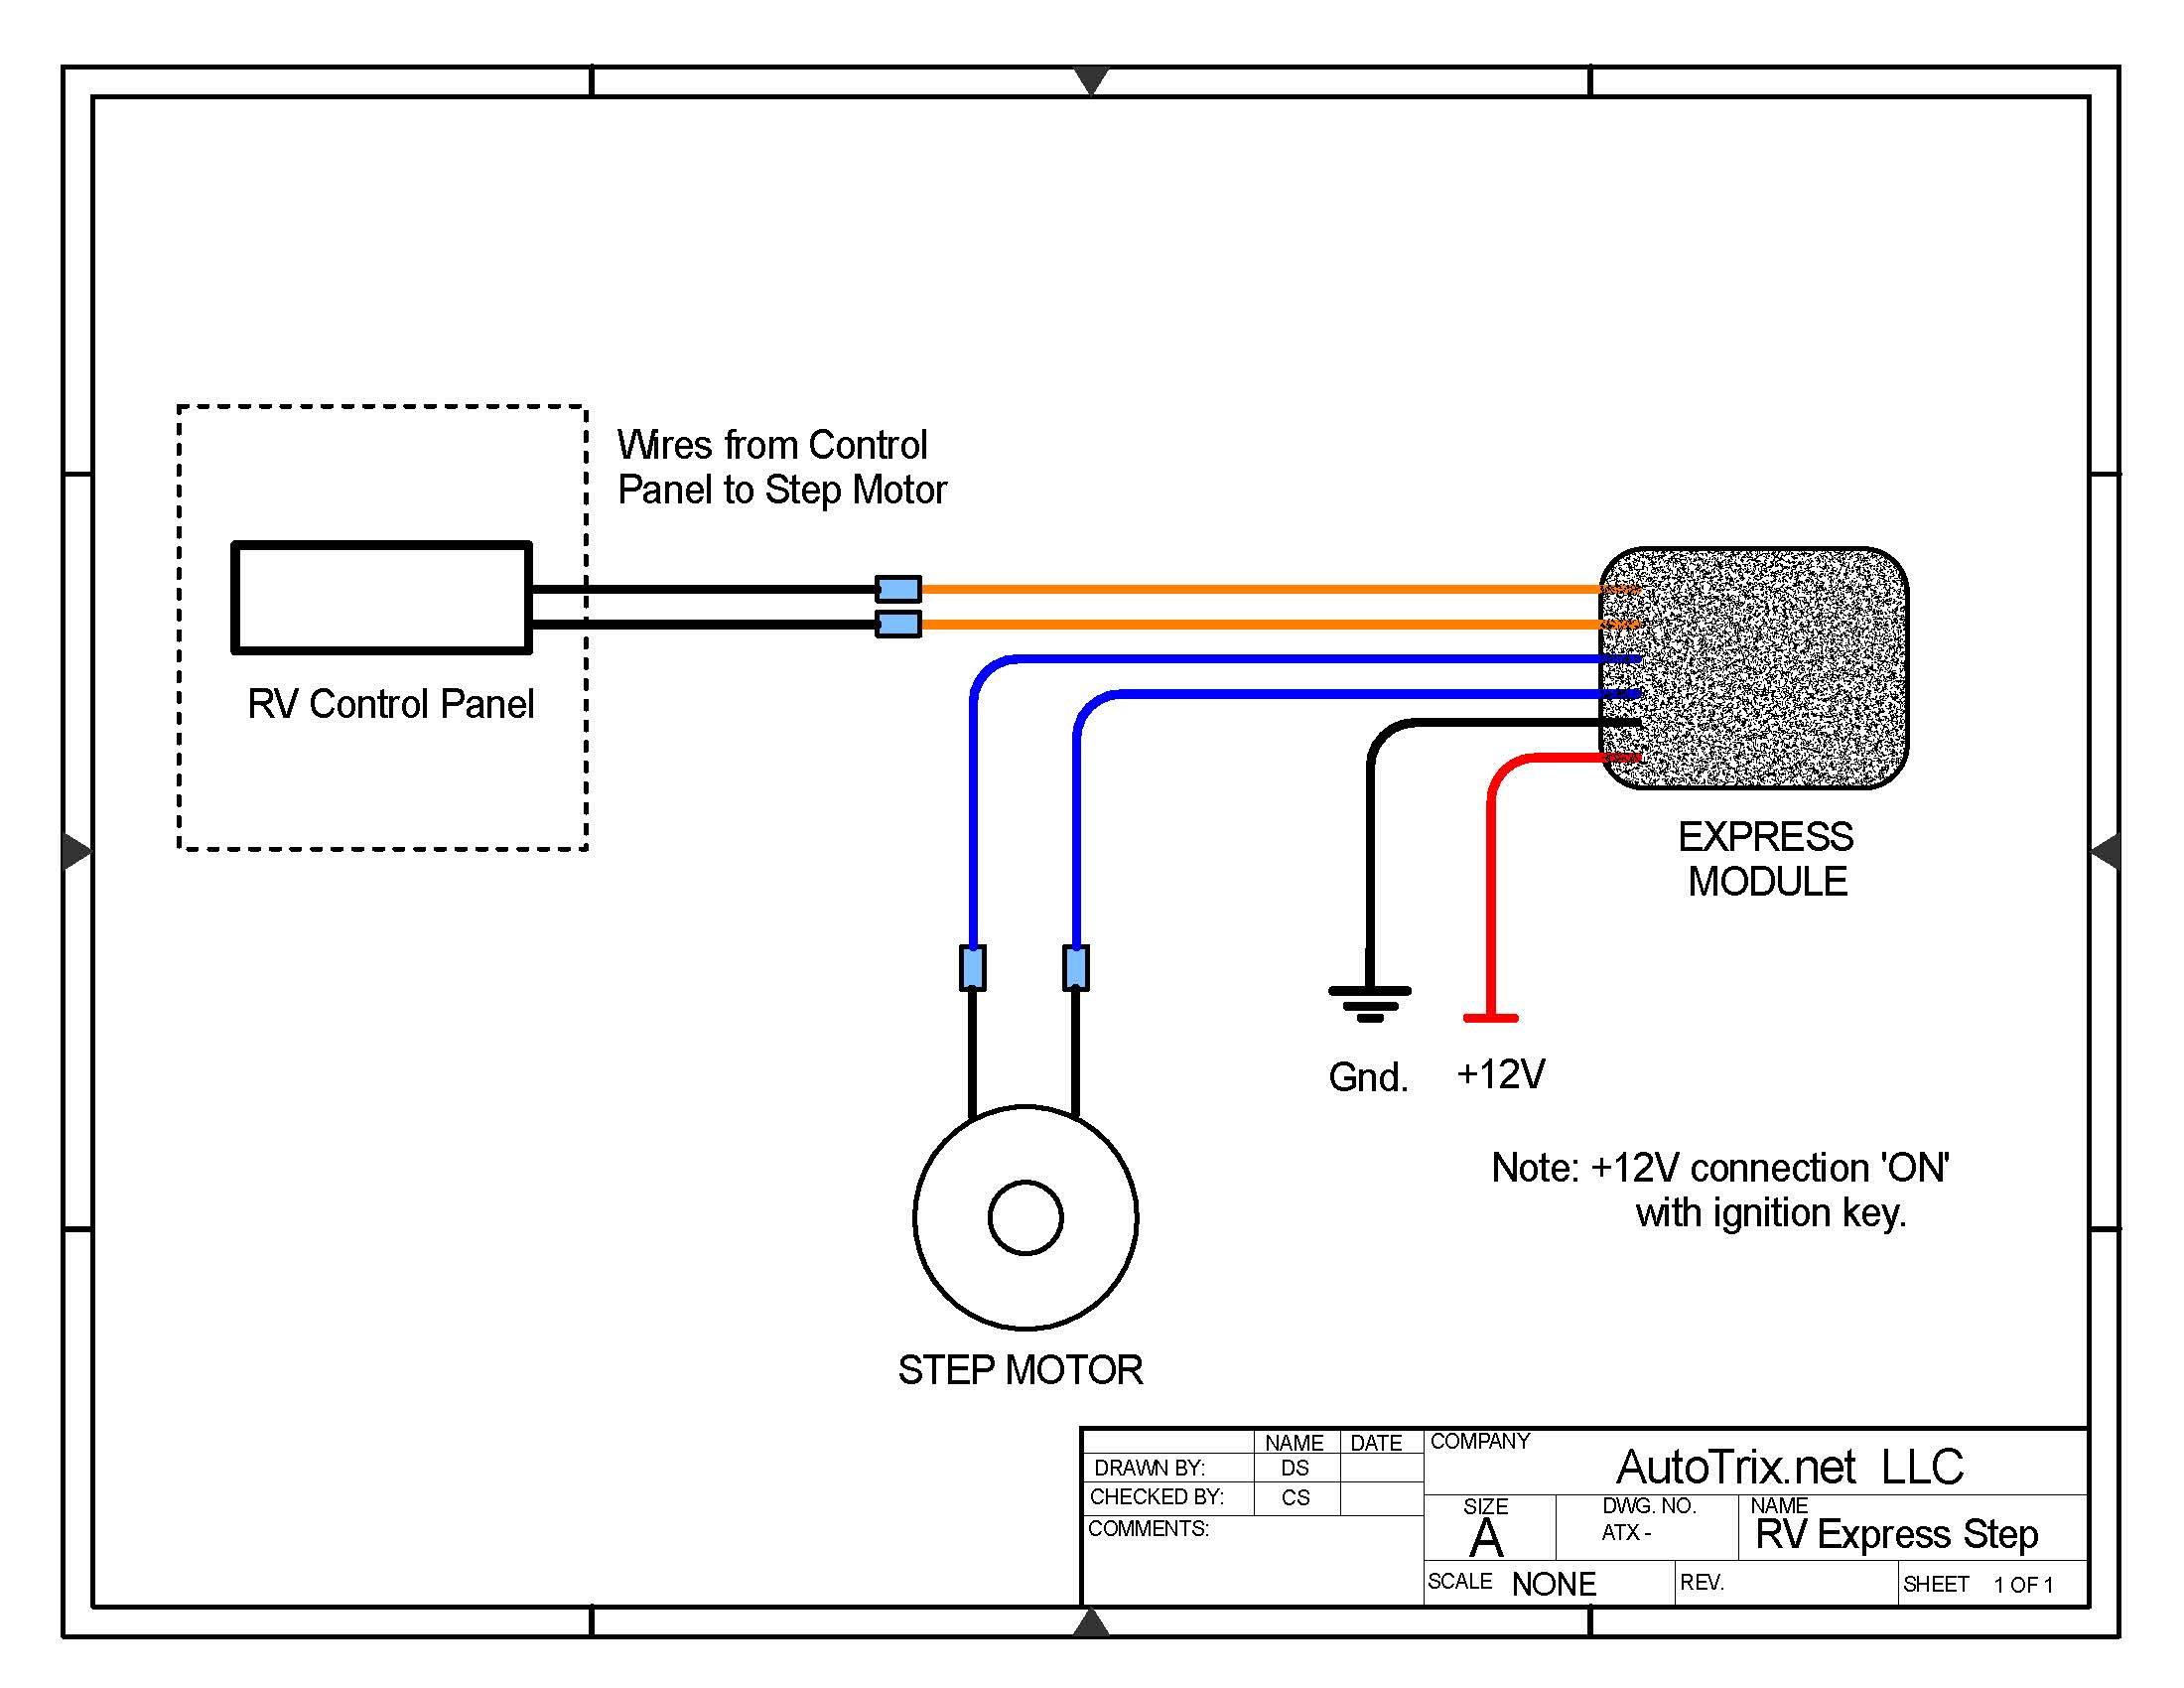 Rv Step Wiring Diagram - Wiring Diagram Data Schema Rv Electric Step Wiring Diagram on rv wiring system, rv power wiring, rv solar system diagram, rv water pump wiring diagram, rv battery wiring diagram, rv black water tank diagram, rv battery isolator diagram, rv water heater wiring diagrams, rv breaker box wiring diagram,